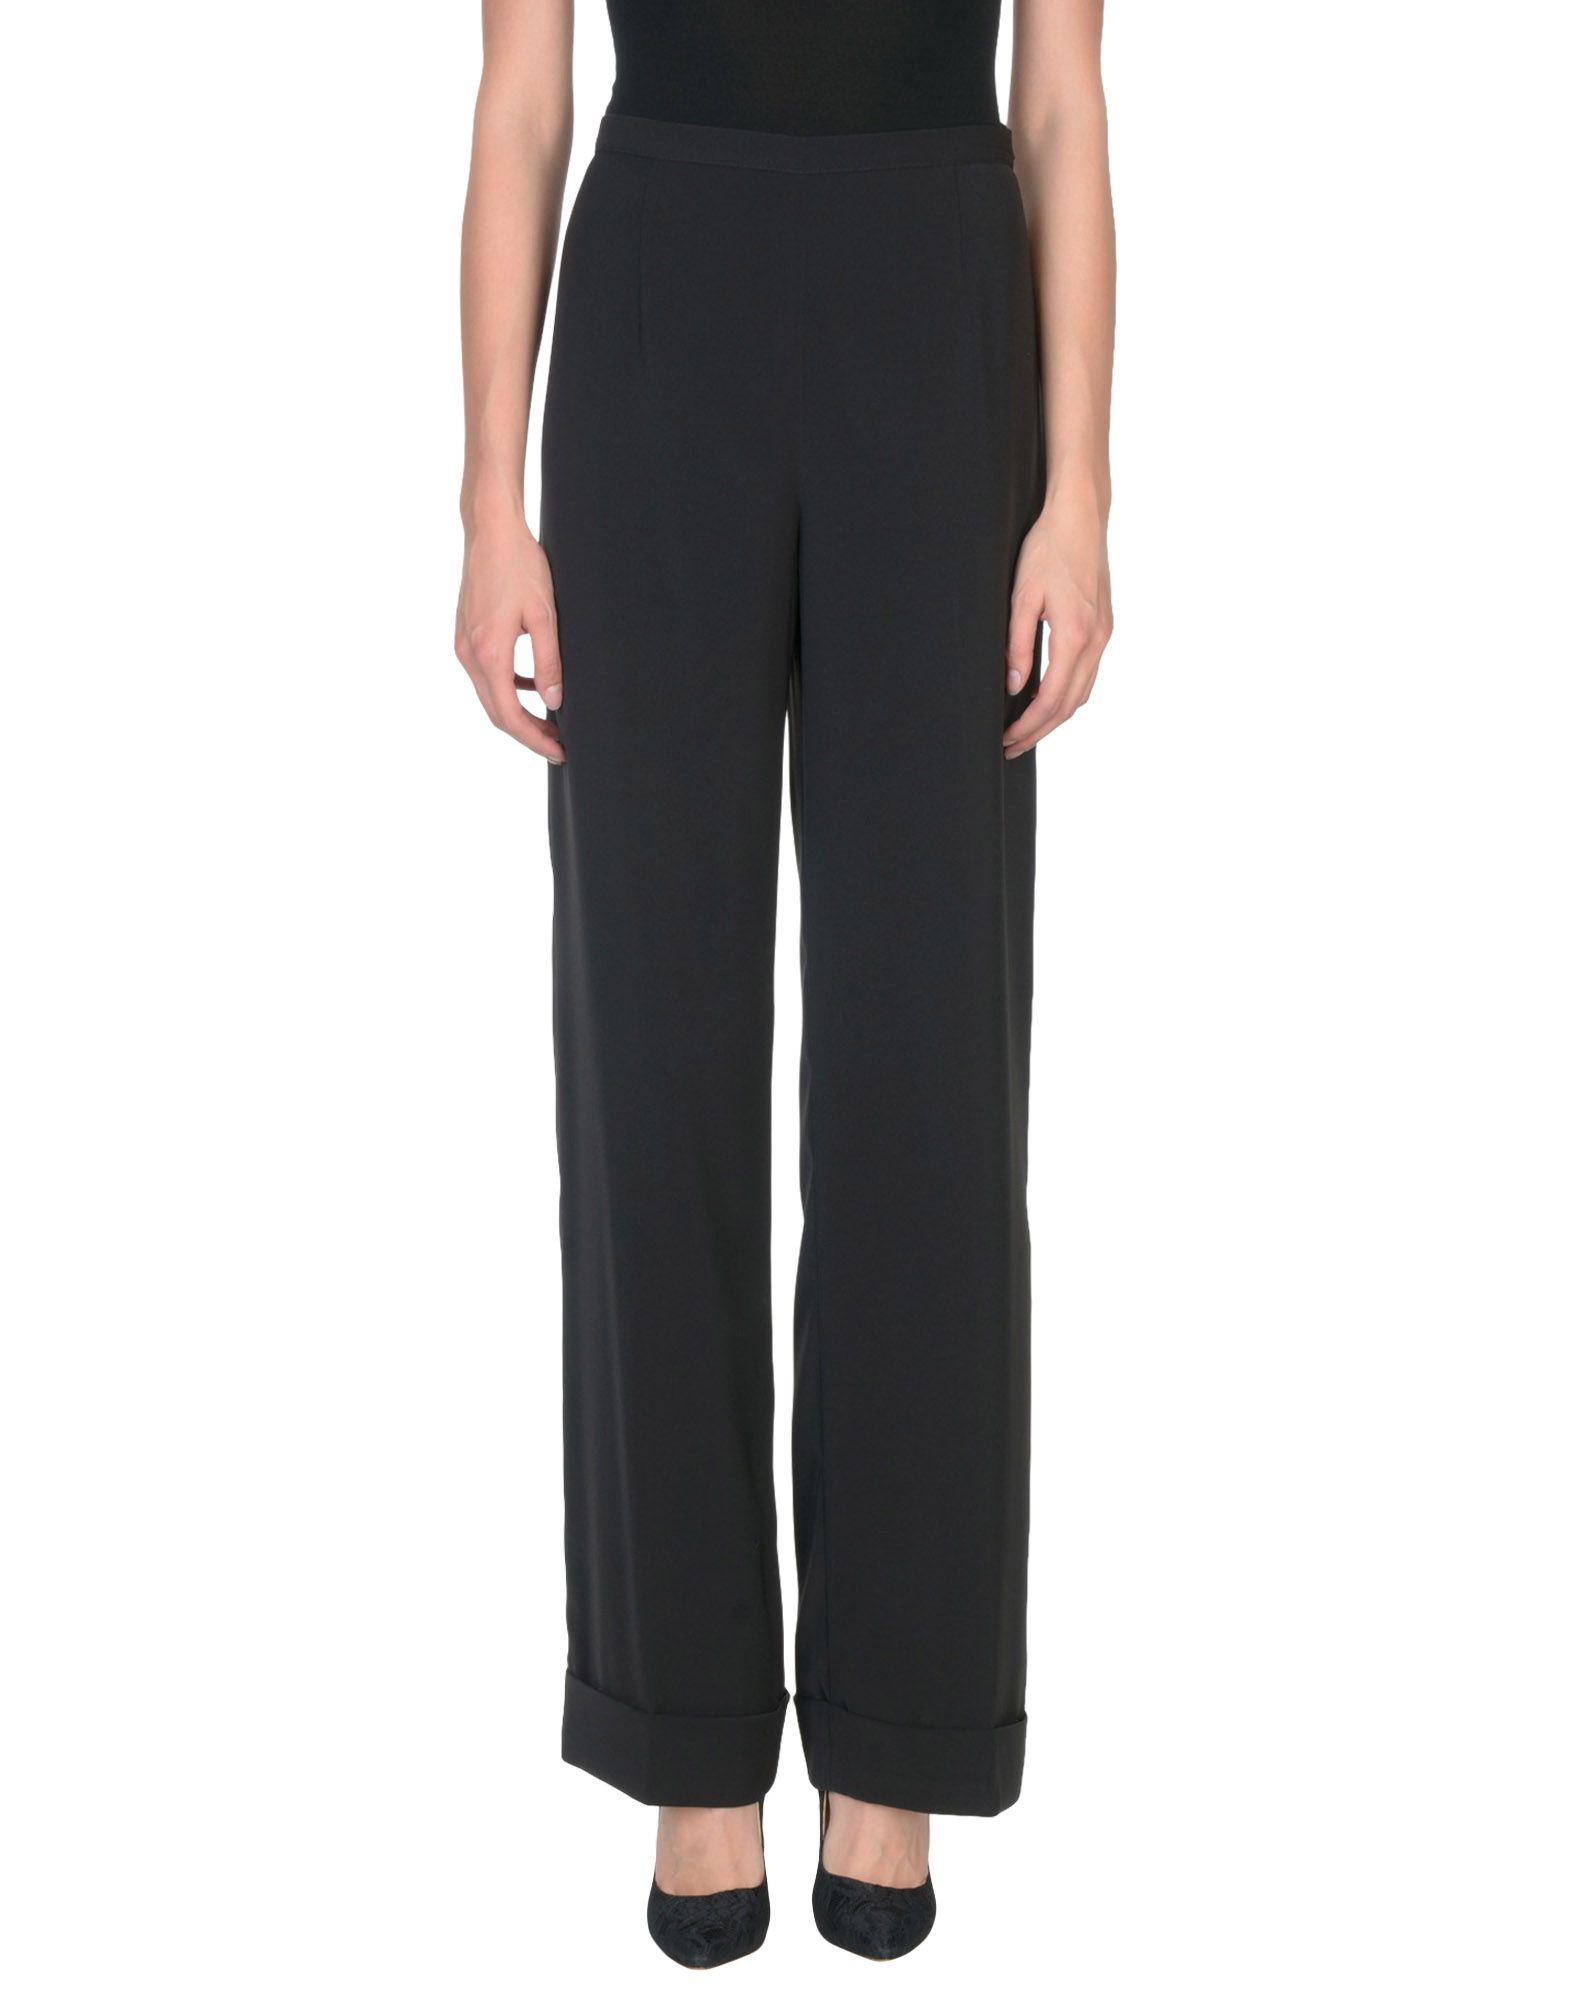 TROUSERS - Casual trousers Irma Bignami jHBi130